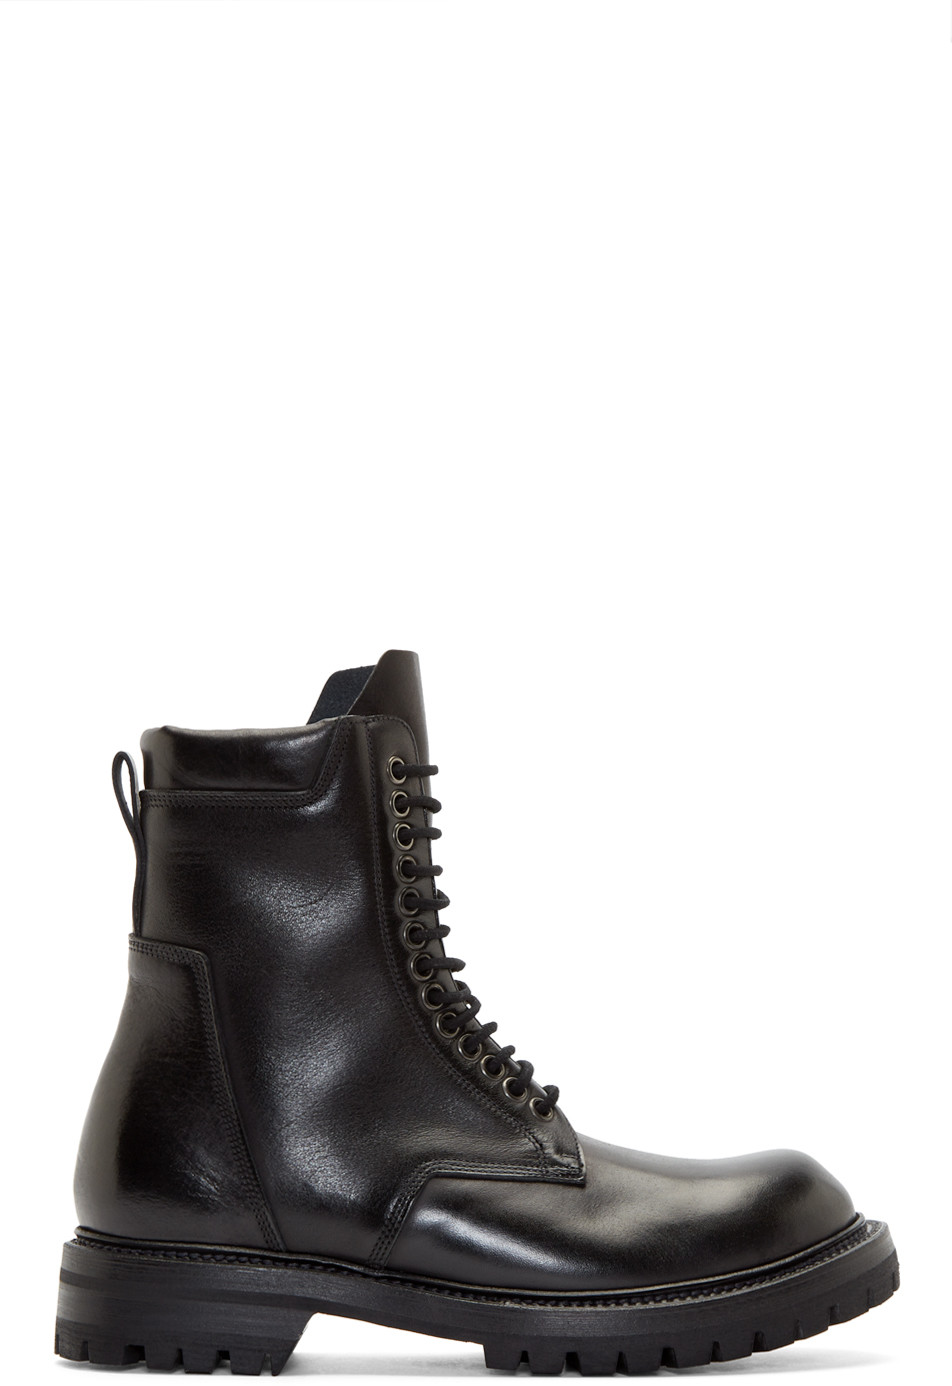 Rick Owens Men's Chunky Wrap-around Army Boots In Black